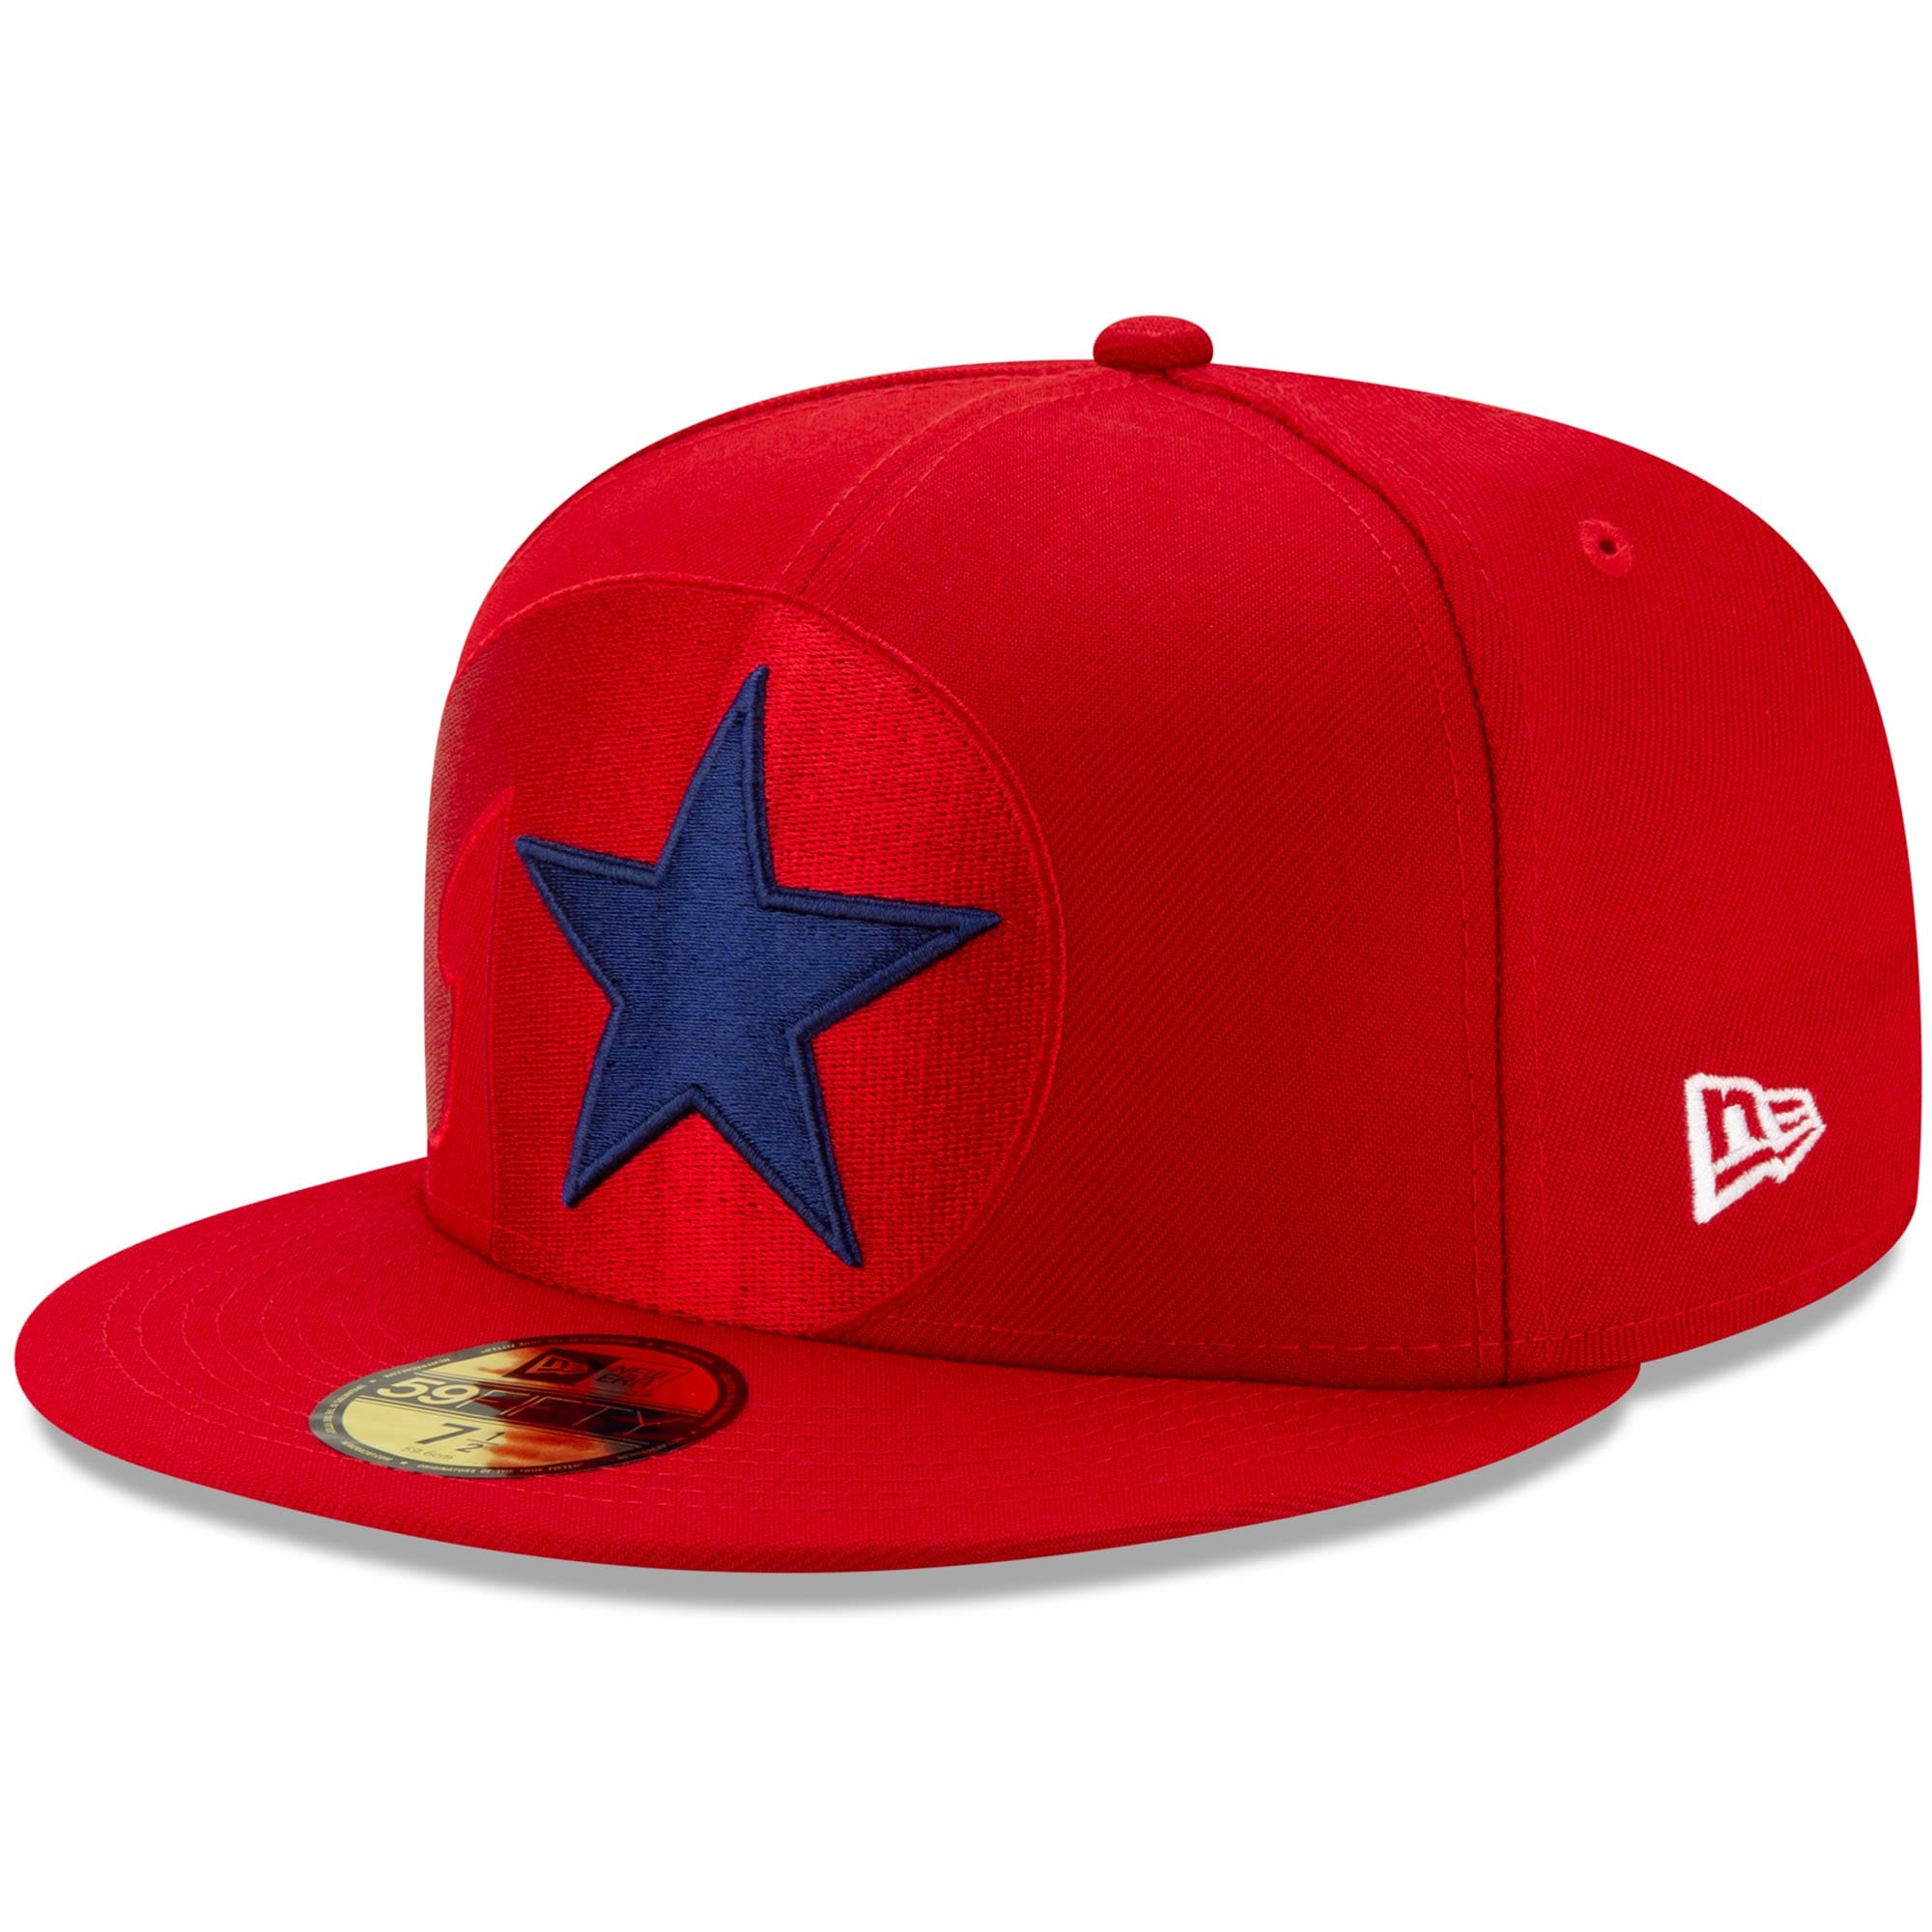 Philadelphia Phillies New Era Logo Elements 59FIFTY Fitted Hat - Red